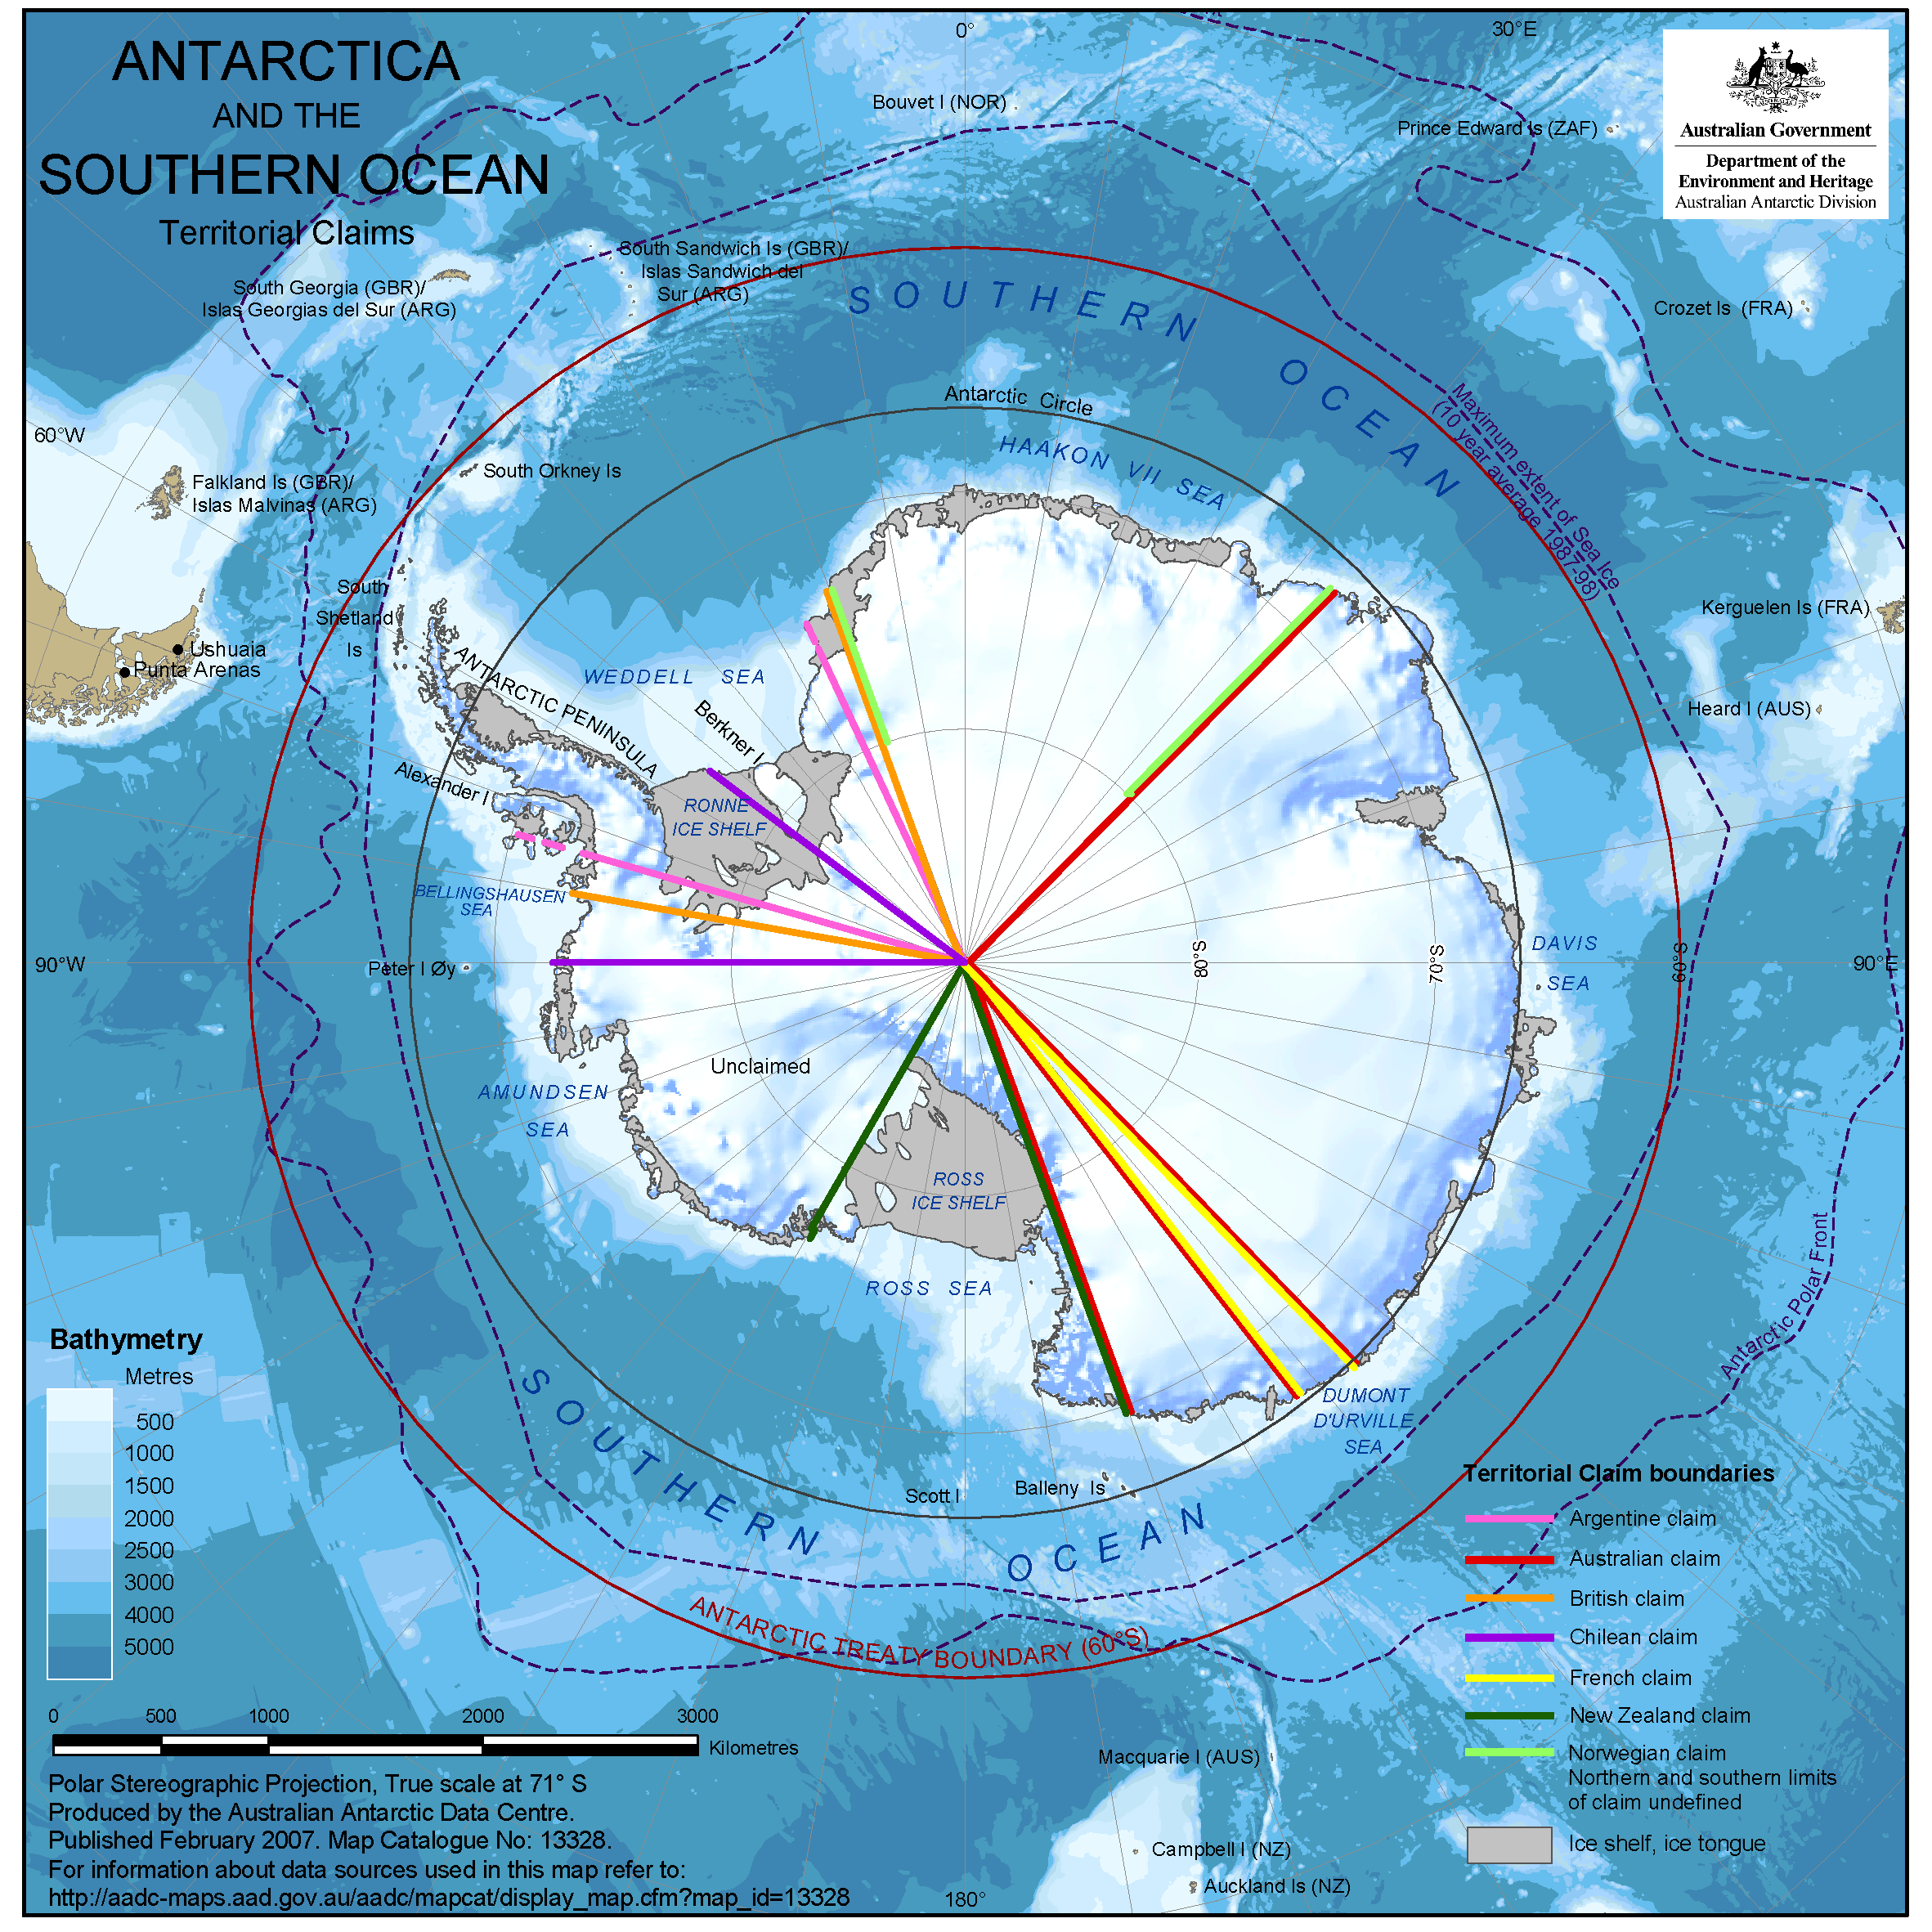 2>Australia santarcticinterests Antarctica, a region of international peace and cooperation, is of great strategic importance to Australia.